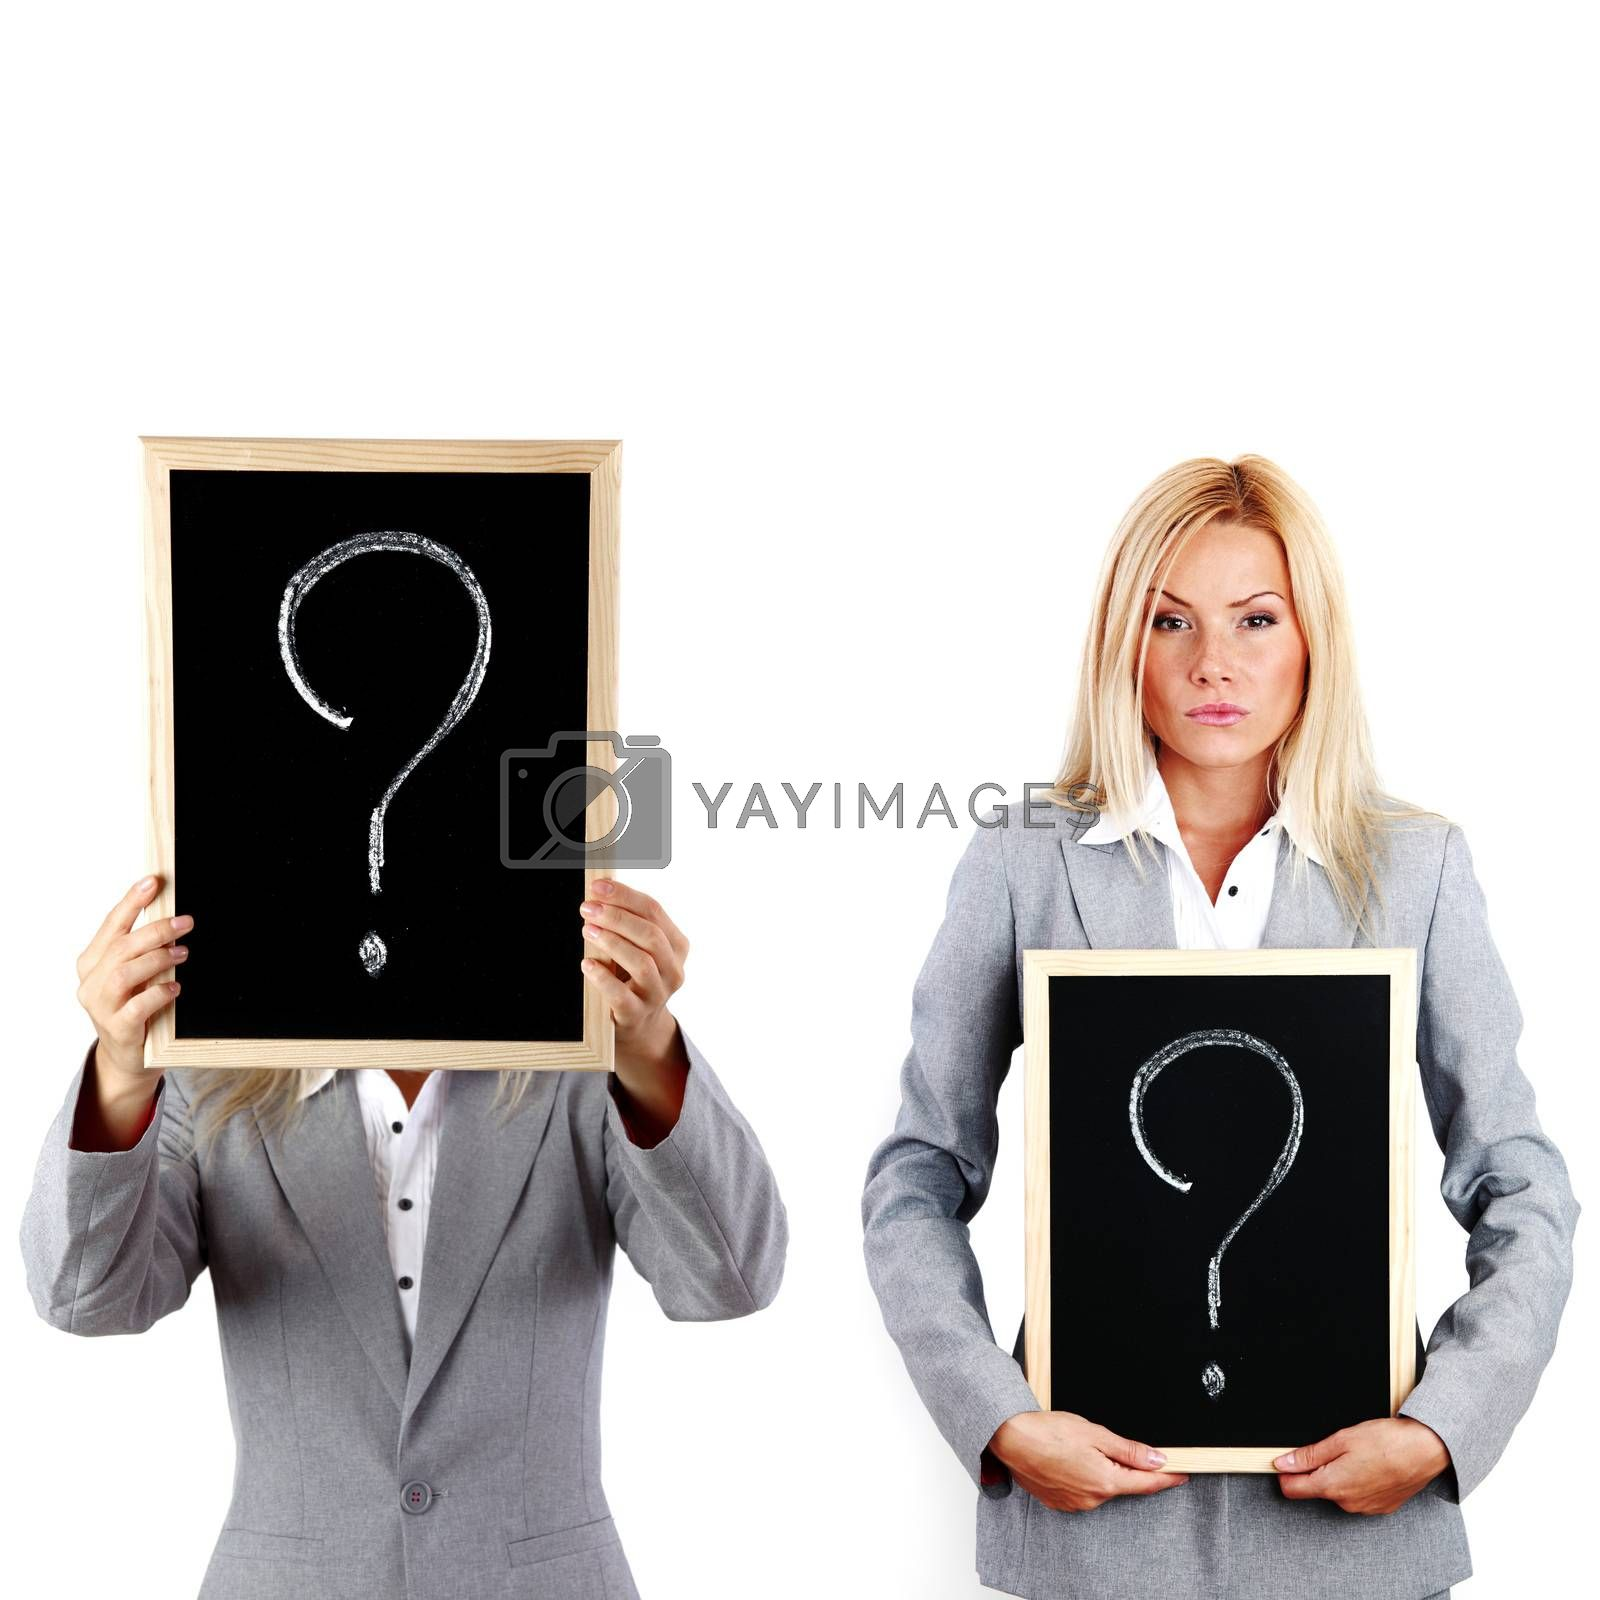 Young business woman in suit hold question sign on blackboard in hands